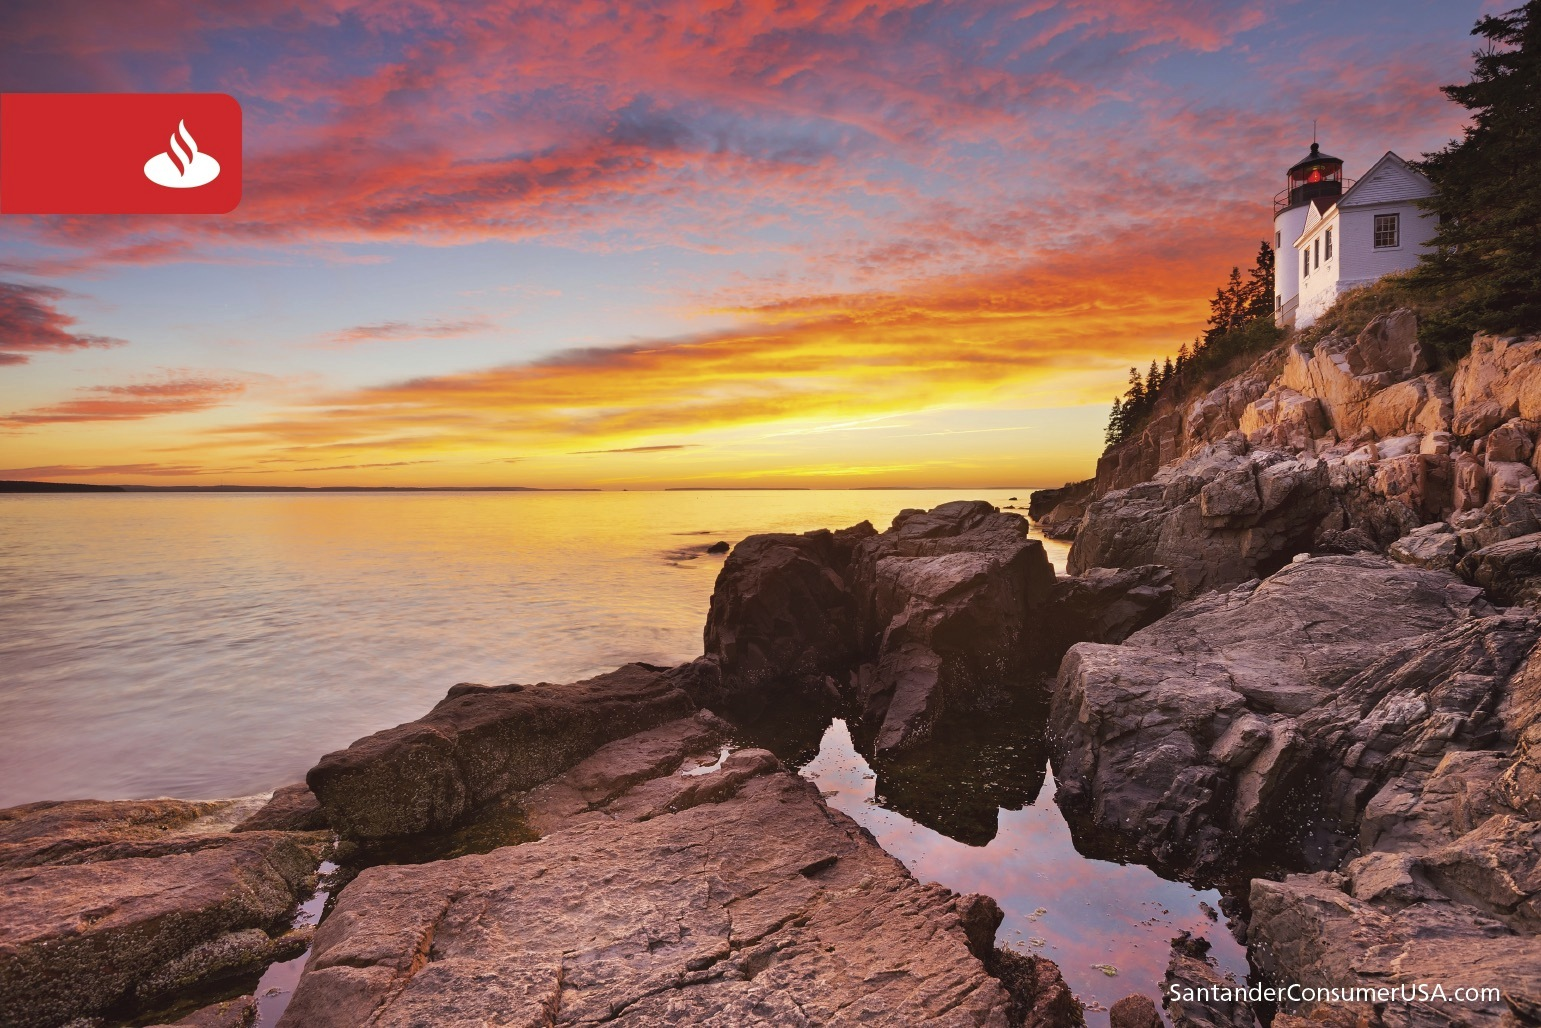 A dazzling sky over Mount Desert Island in Acadia National Park.